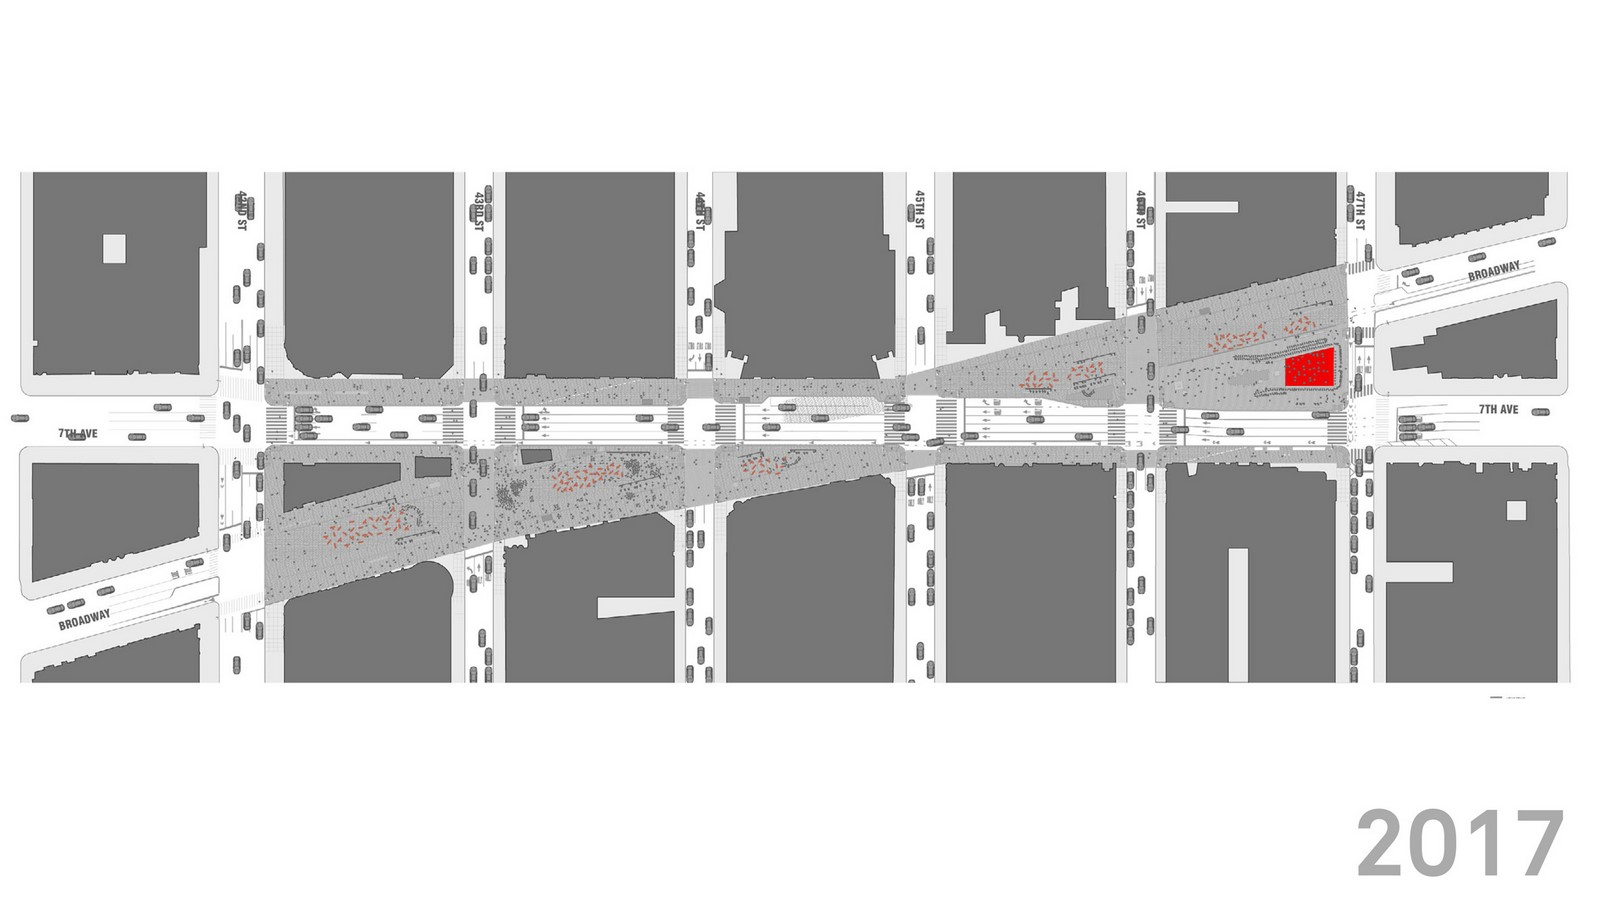 Architectural development of Times Square - Sheet6